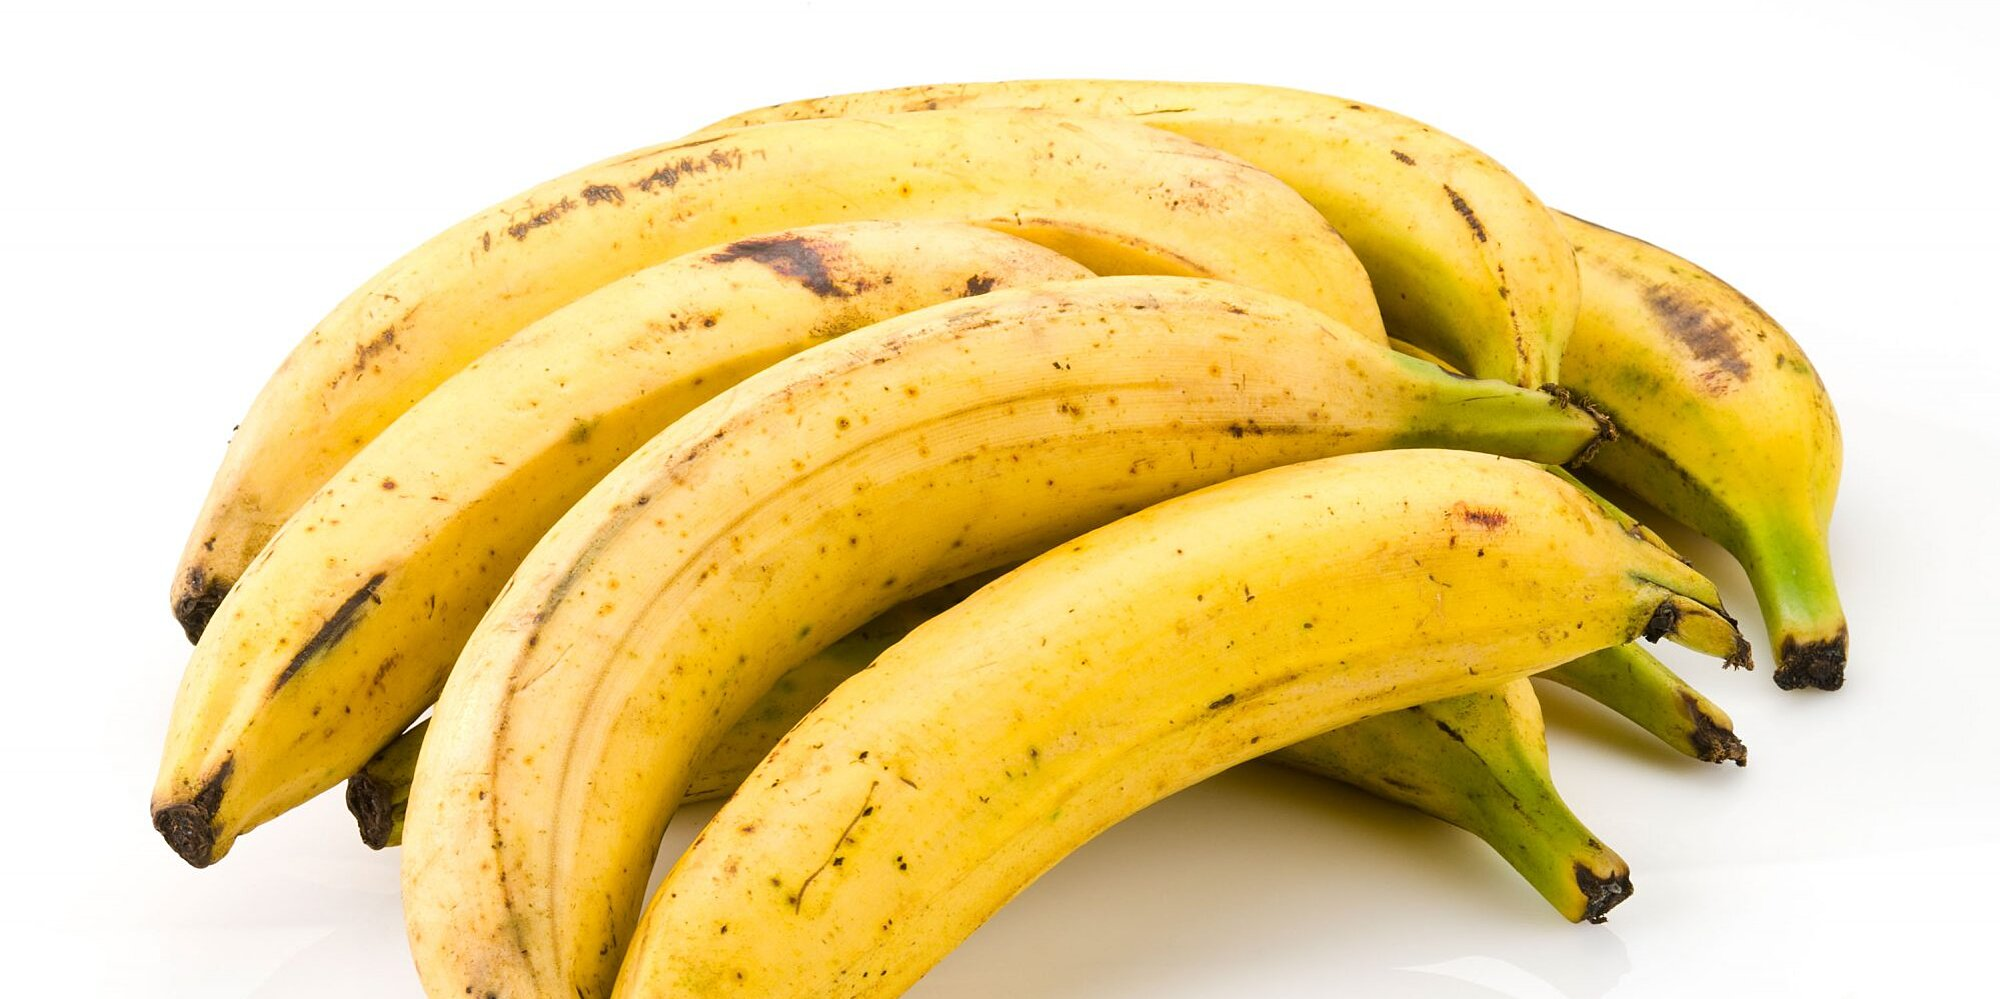 Plantains vs. Bananas: What's the Difference? | Allrecipes